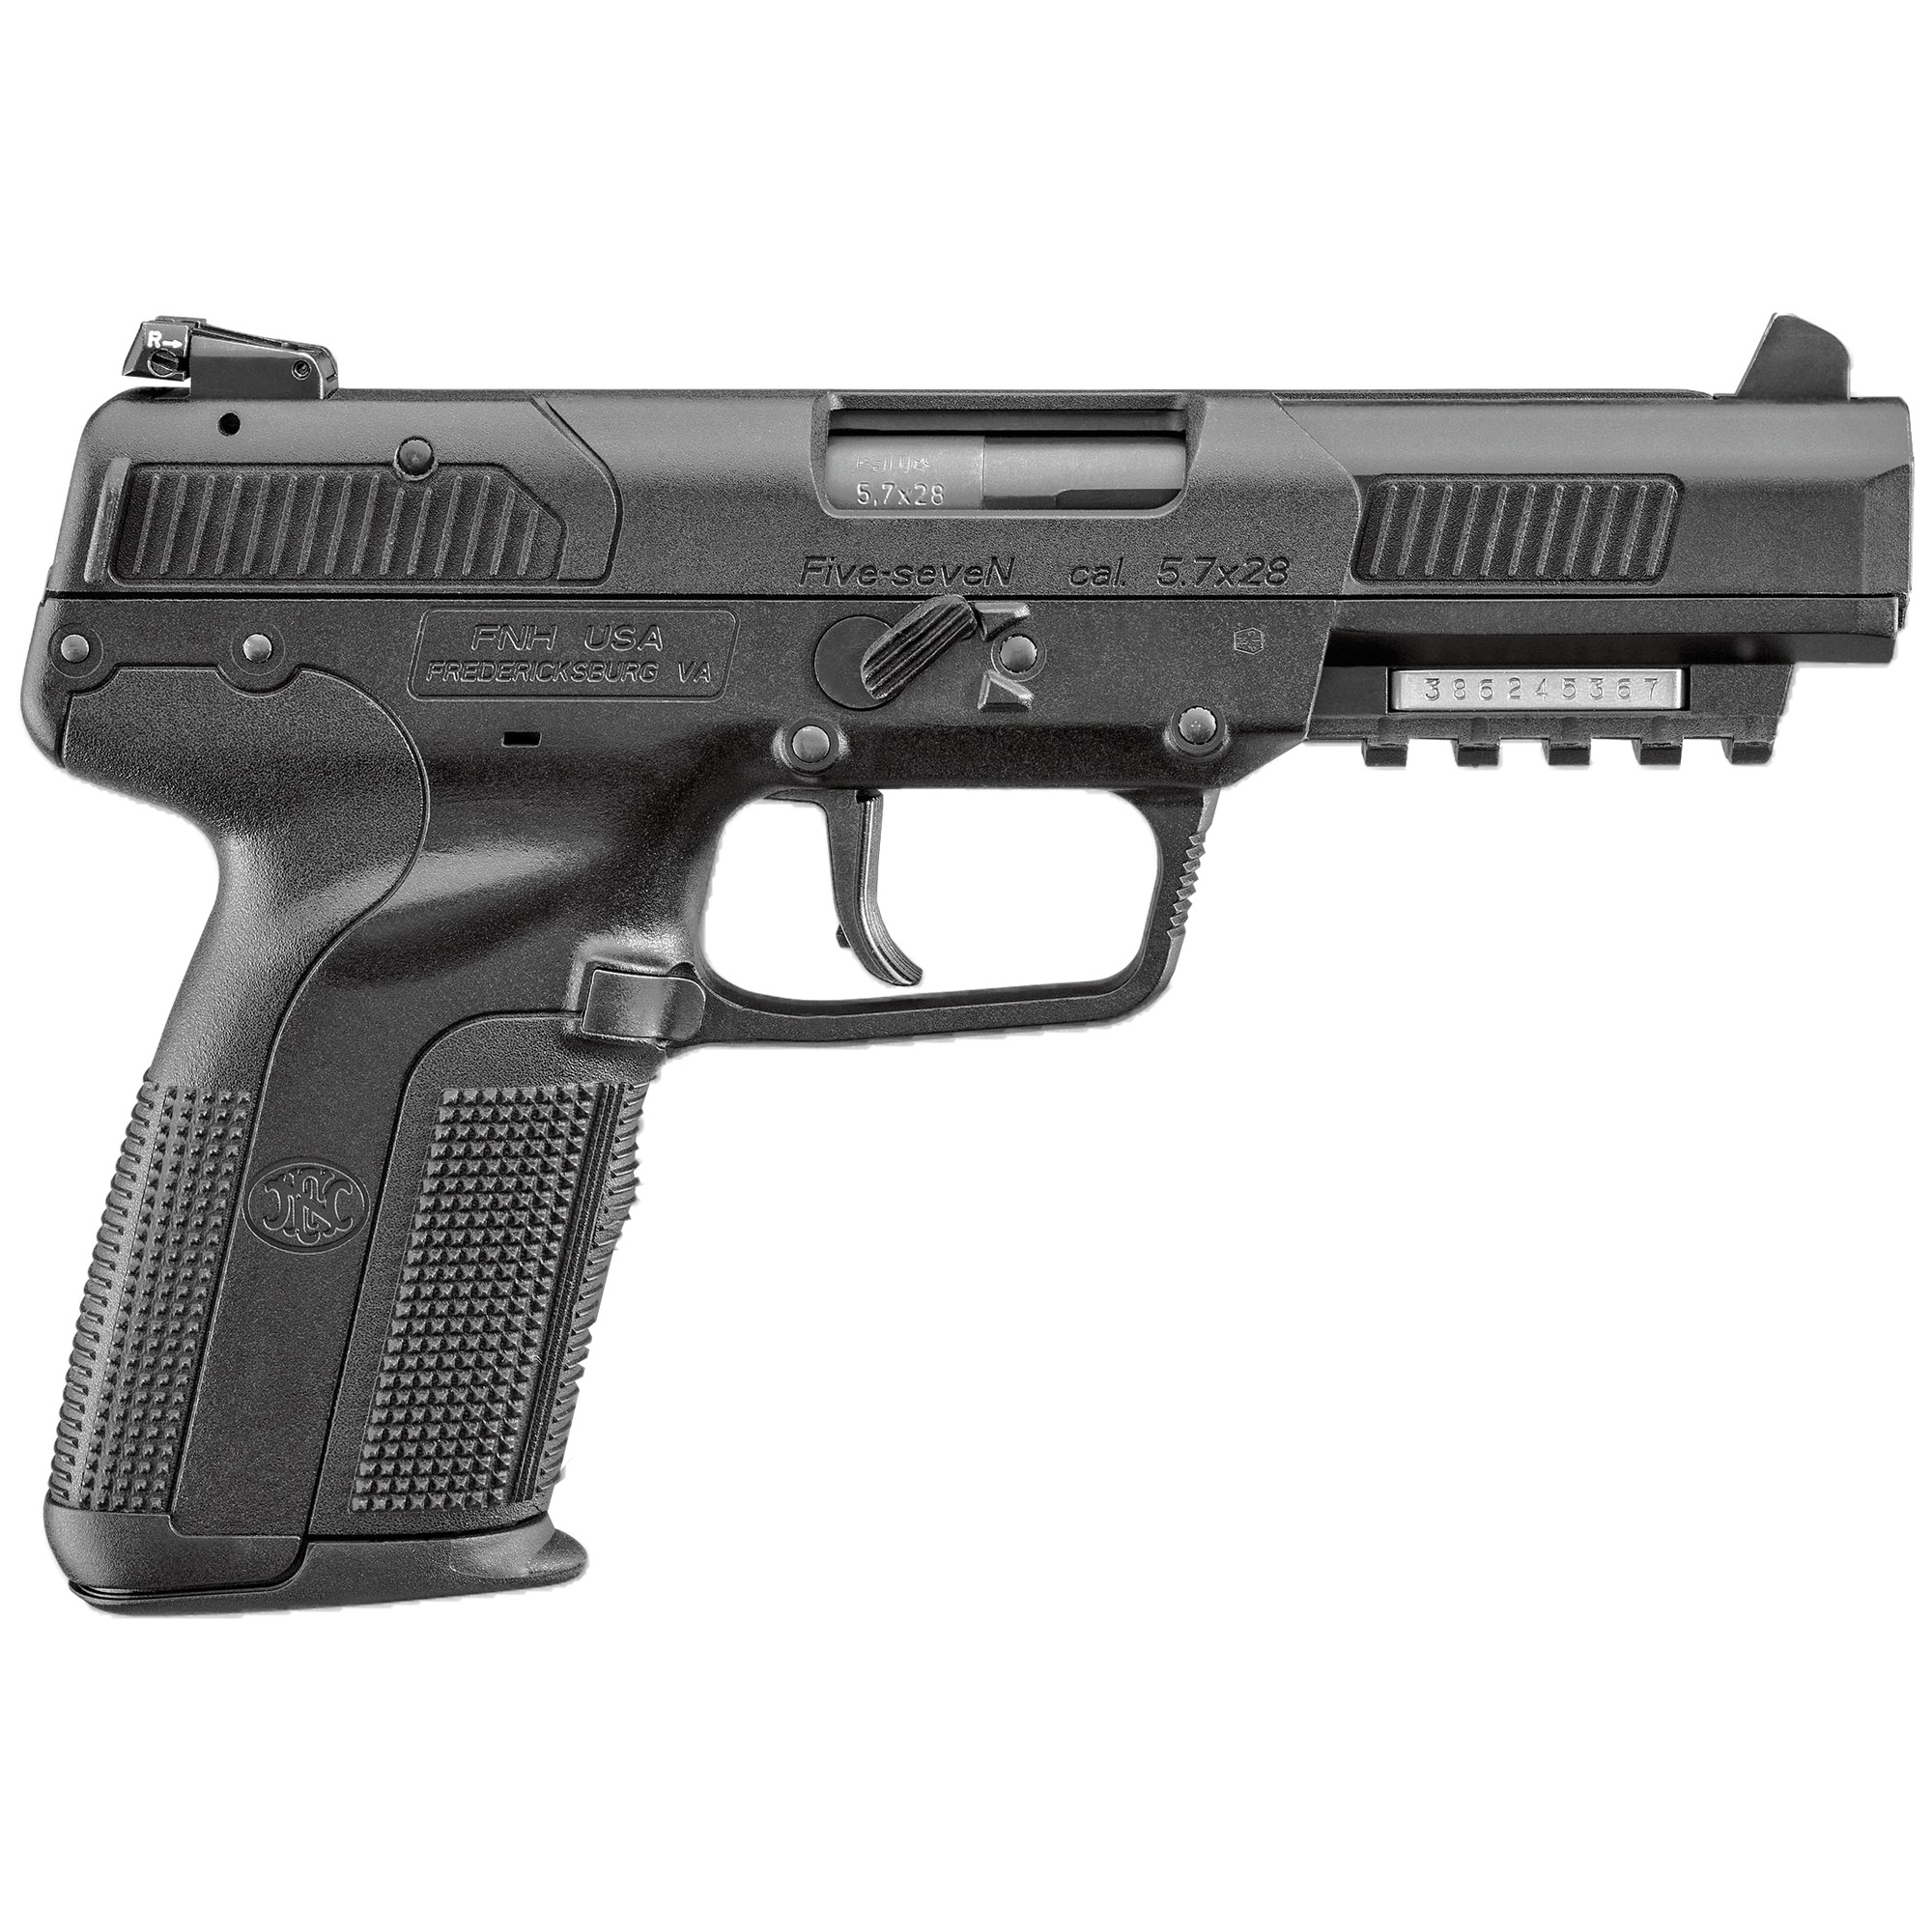 """The FN Five-seven(R) pistol was developed in the early 1990s and features a cold hammer-forged barrel that is chrome-lined for extended service life. The polymer-framed FN Five-seven(R) offers single-action operation"""" low felt recoil"""" 20-round magazine capacity"""" and is equipped with an ambidextrous"""" forward-mounted manual safety"""" and an accessory rail that accepts tactical lights and lasers."""